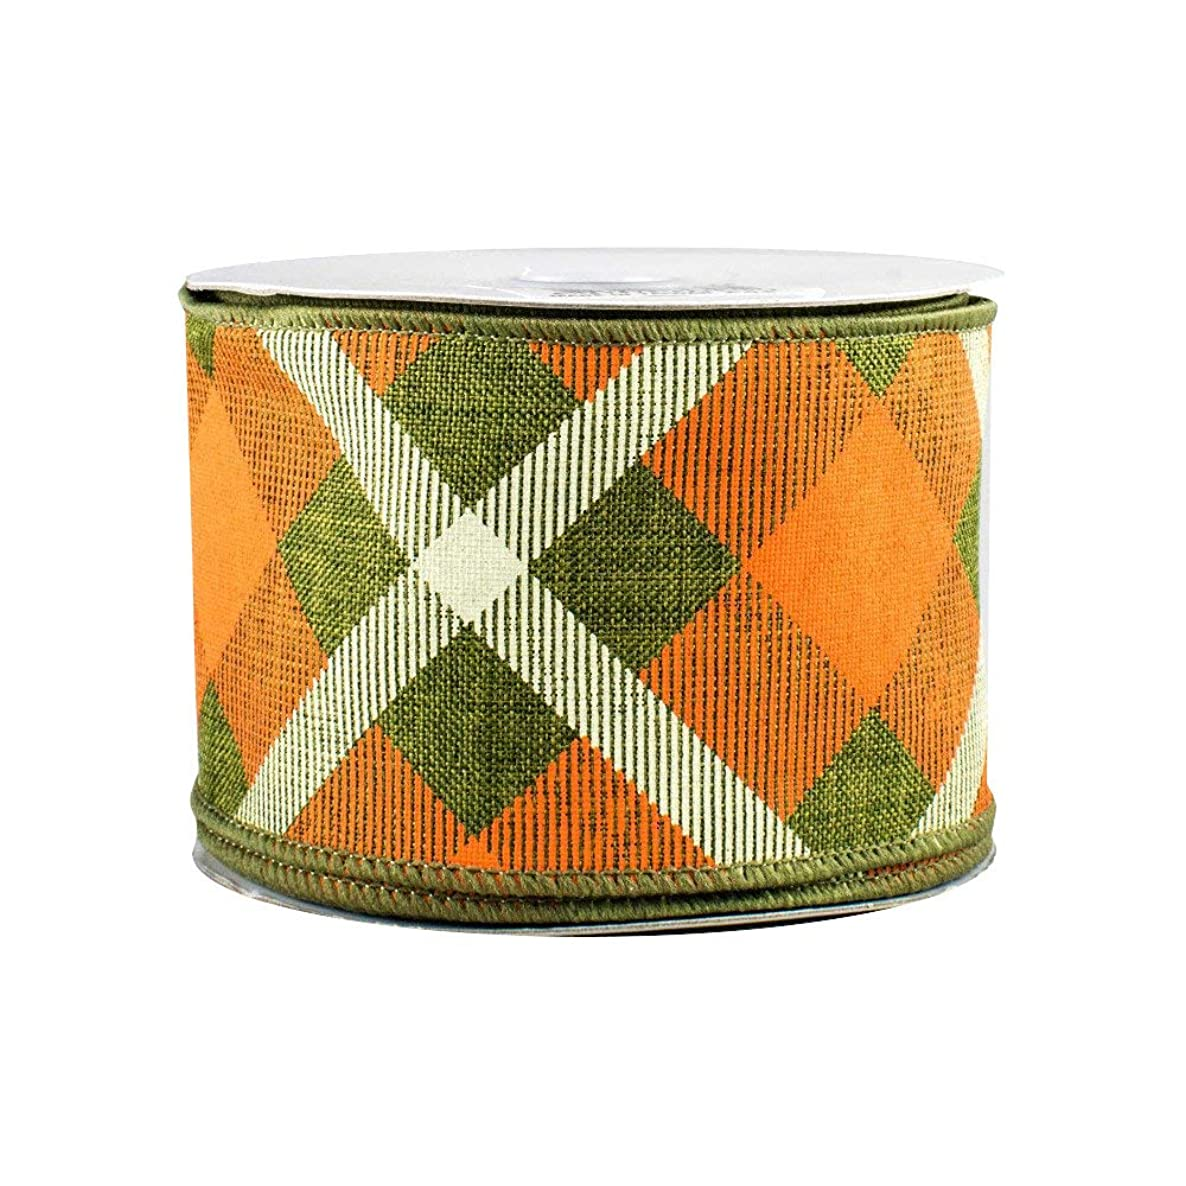 Orange Creamsicle Wired Easter Ribbon - 2 1/2 inch x 10 Yards, Orange, Green and Cream Plaid, Fighting Irish, Christmas Decorations, St. Patrick's Day, Spring Decor, Wreath, Swag, Garland, Irish Flag